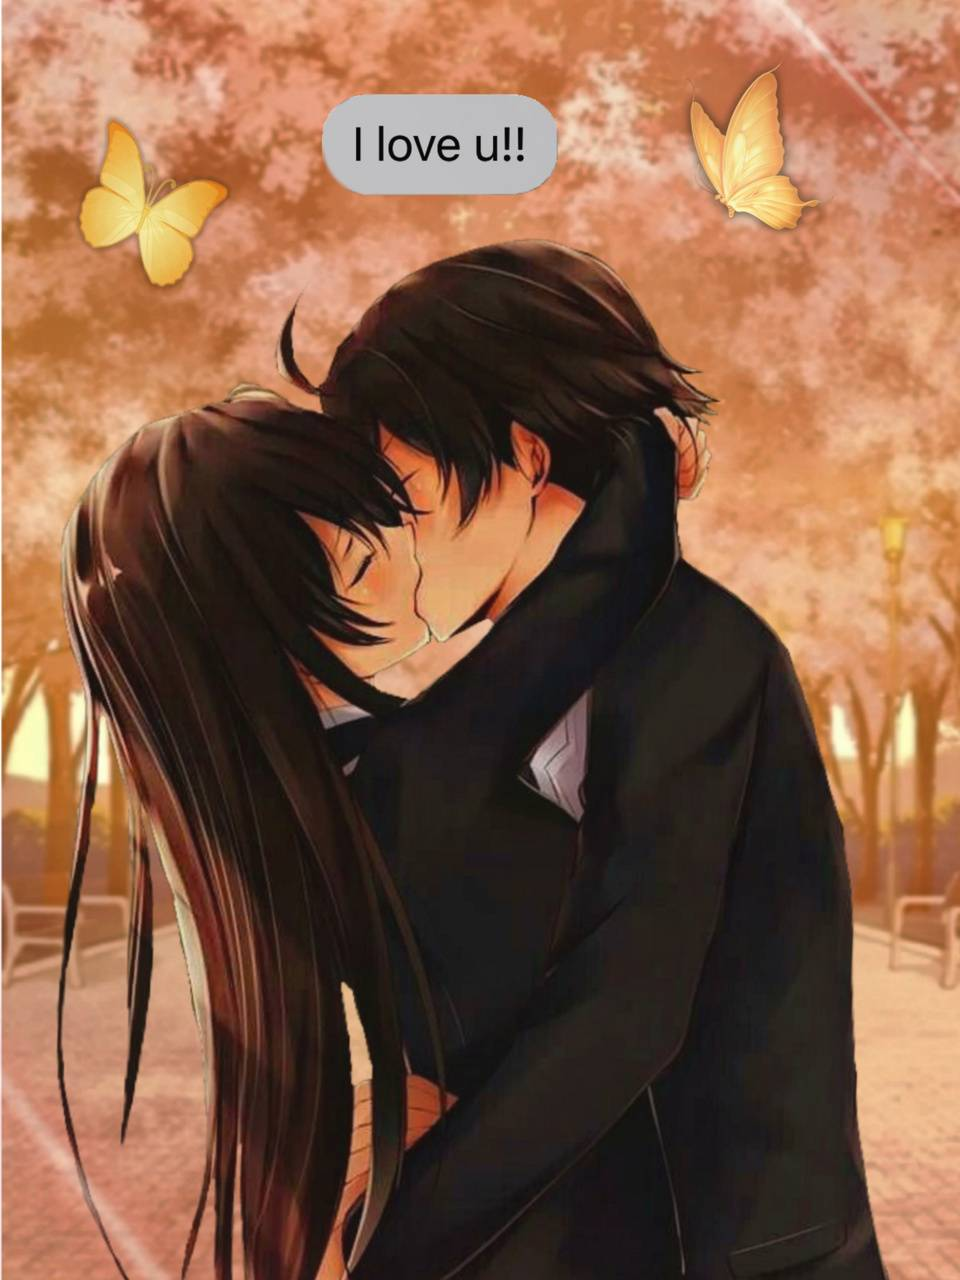 Anime Couple Wallpaper By Anuscachan 68 Free On Zedge